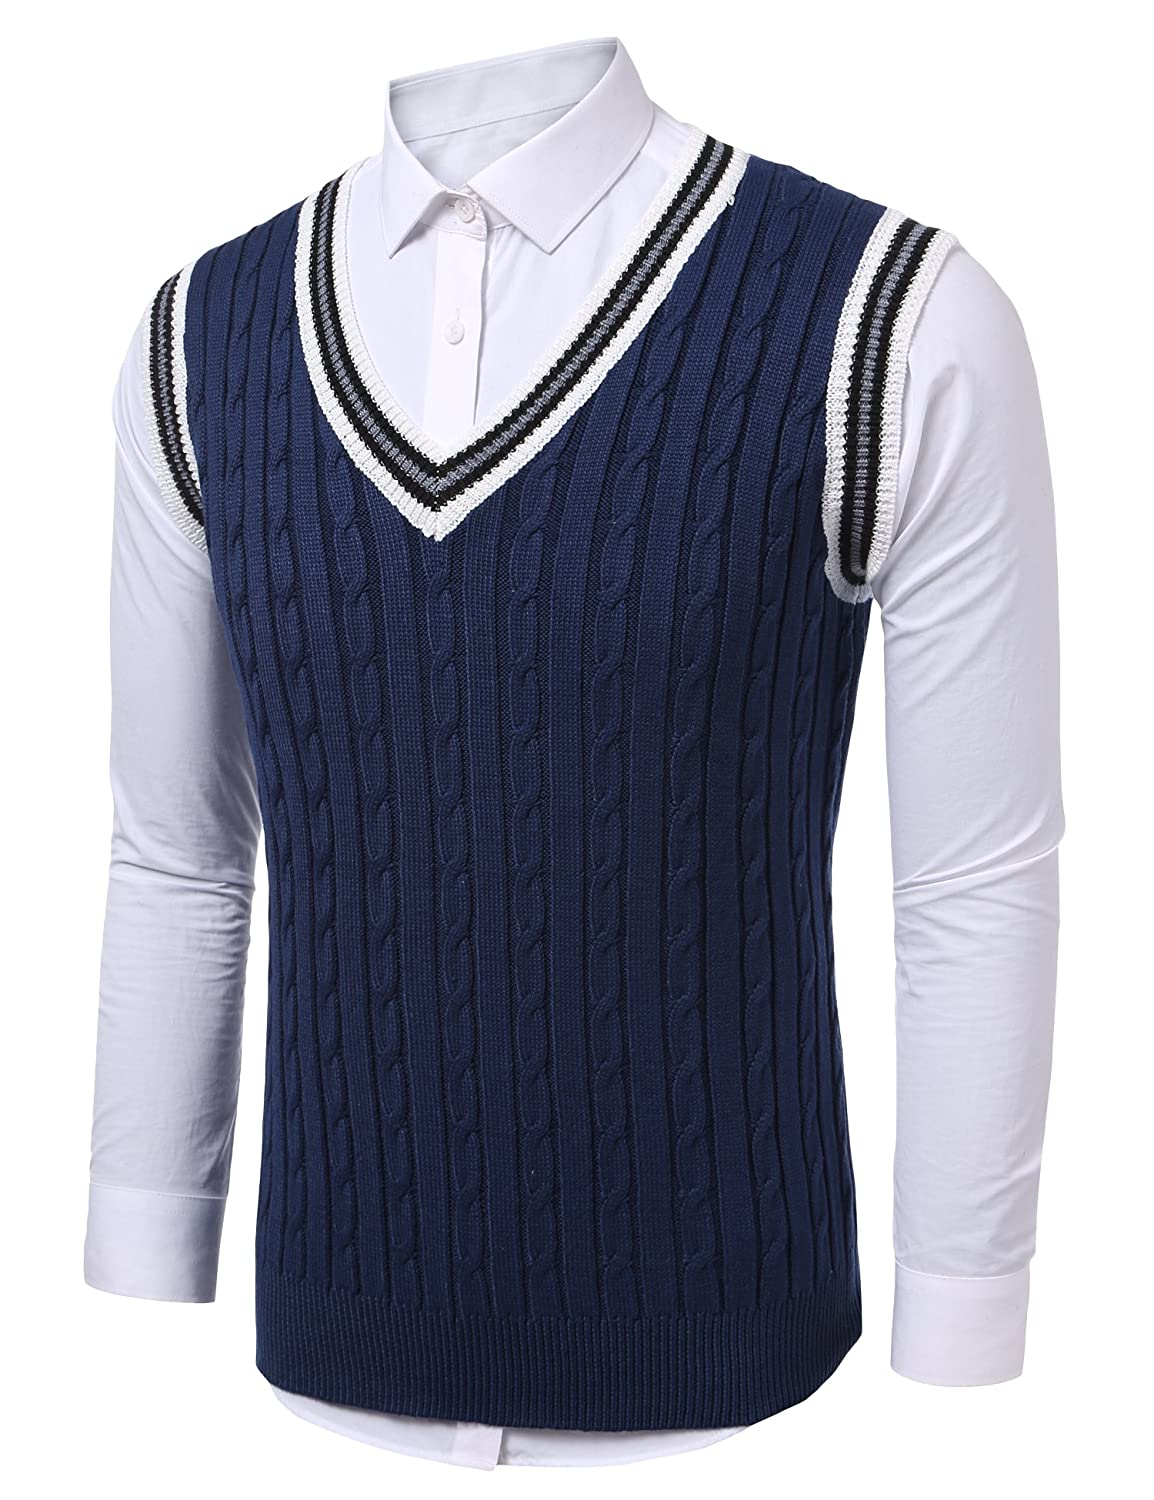 1920s Mens Sweaters, Pullovers, Cardigans Coofandy Mens Casual Knitted Sweater Slim Fit Pullover Cable Sweater Links-Vest $27.99 AT vintagedancer.com